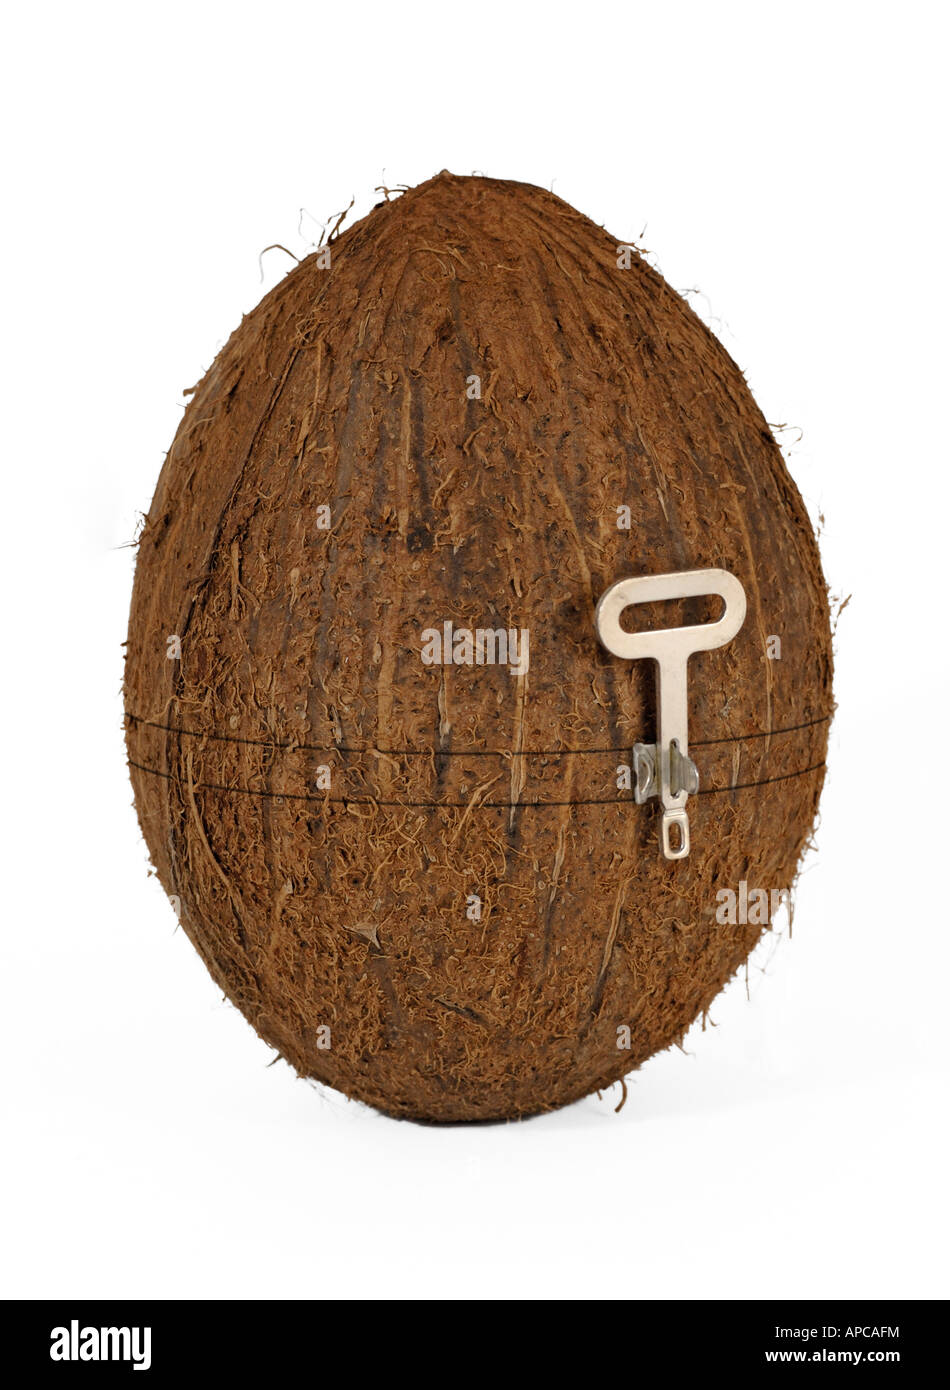 Coconut with a built in tin can opener symbol of making it coconut with a built in tin can opener symbol of making it easy new or alternative way of thinking etc biocorpaavc